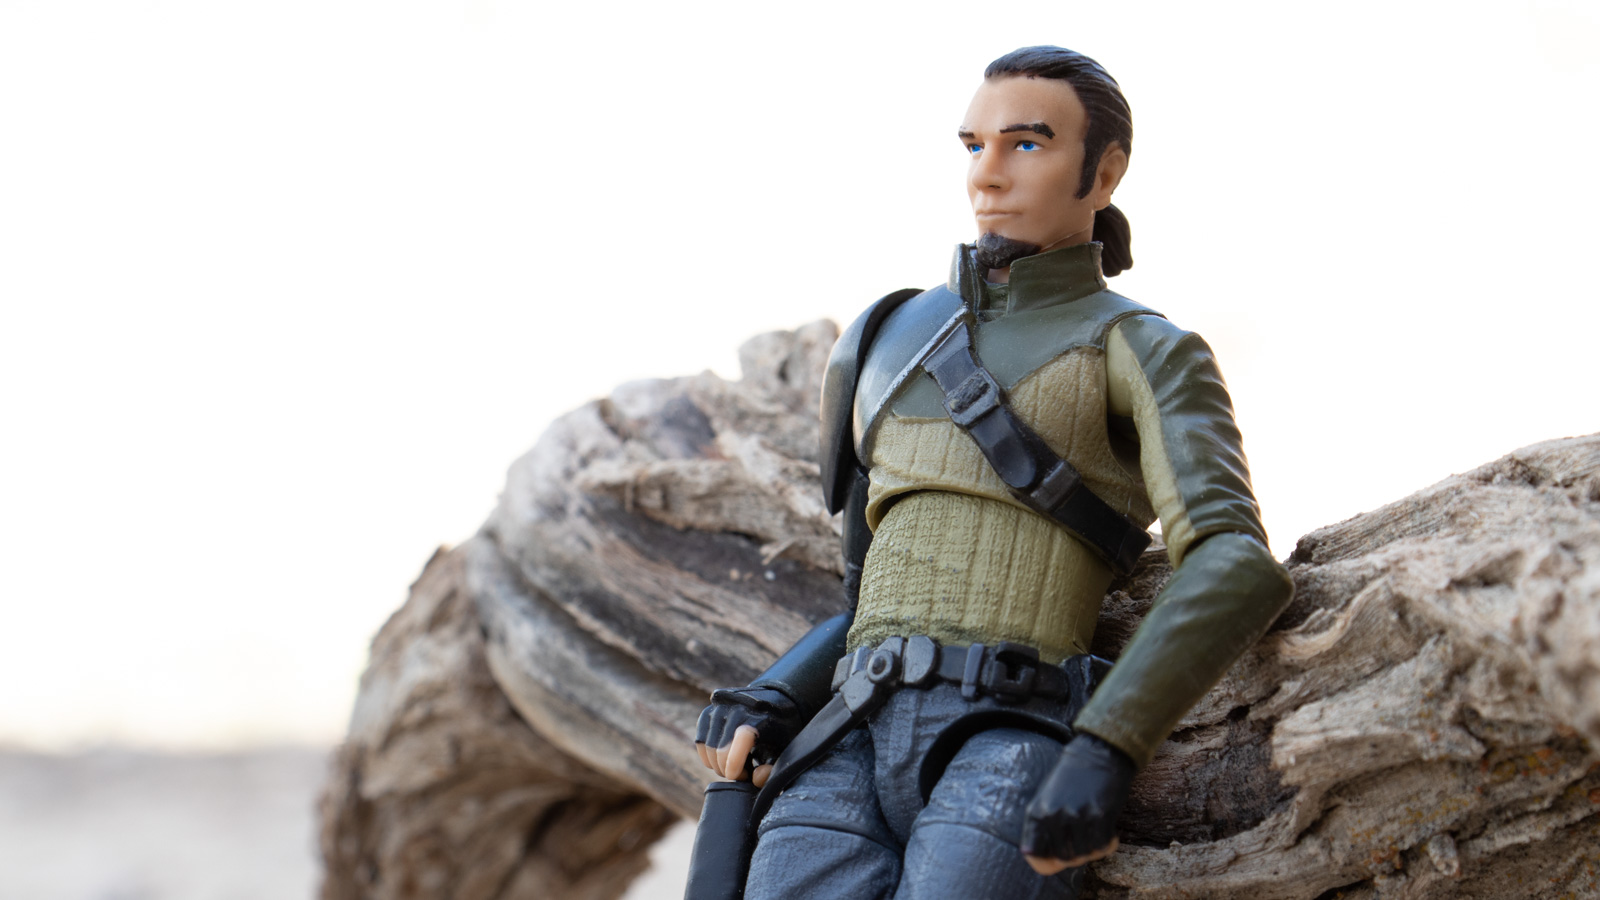 Featured Image Kanan Jarrus - @teddi_toyworld